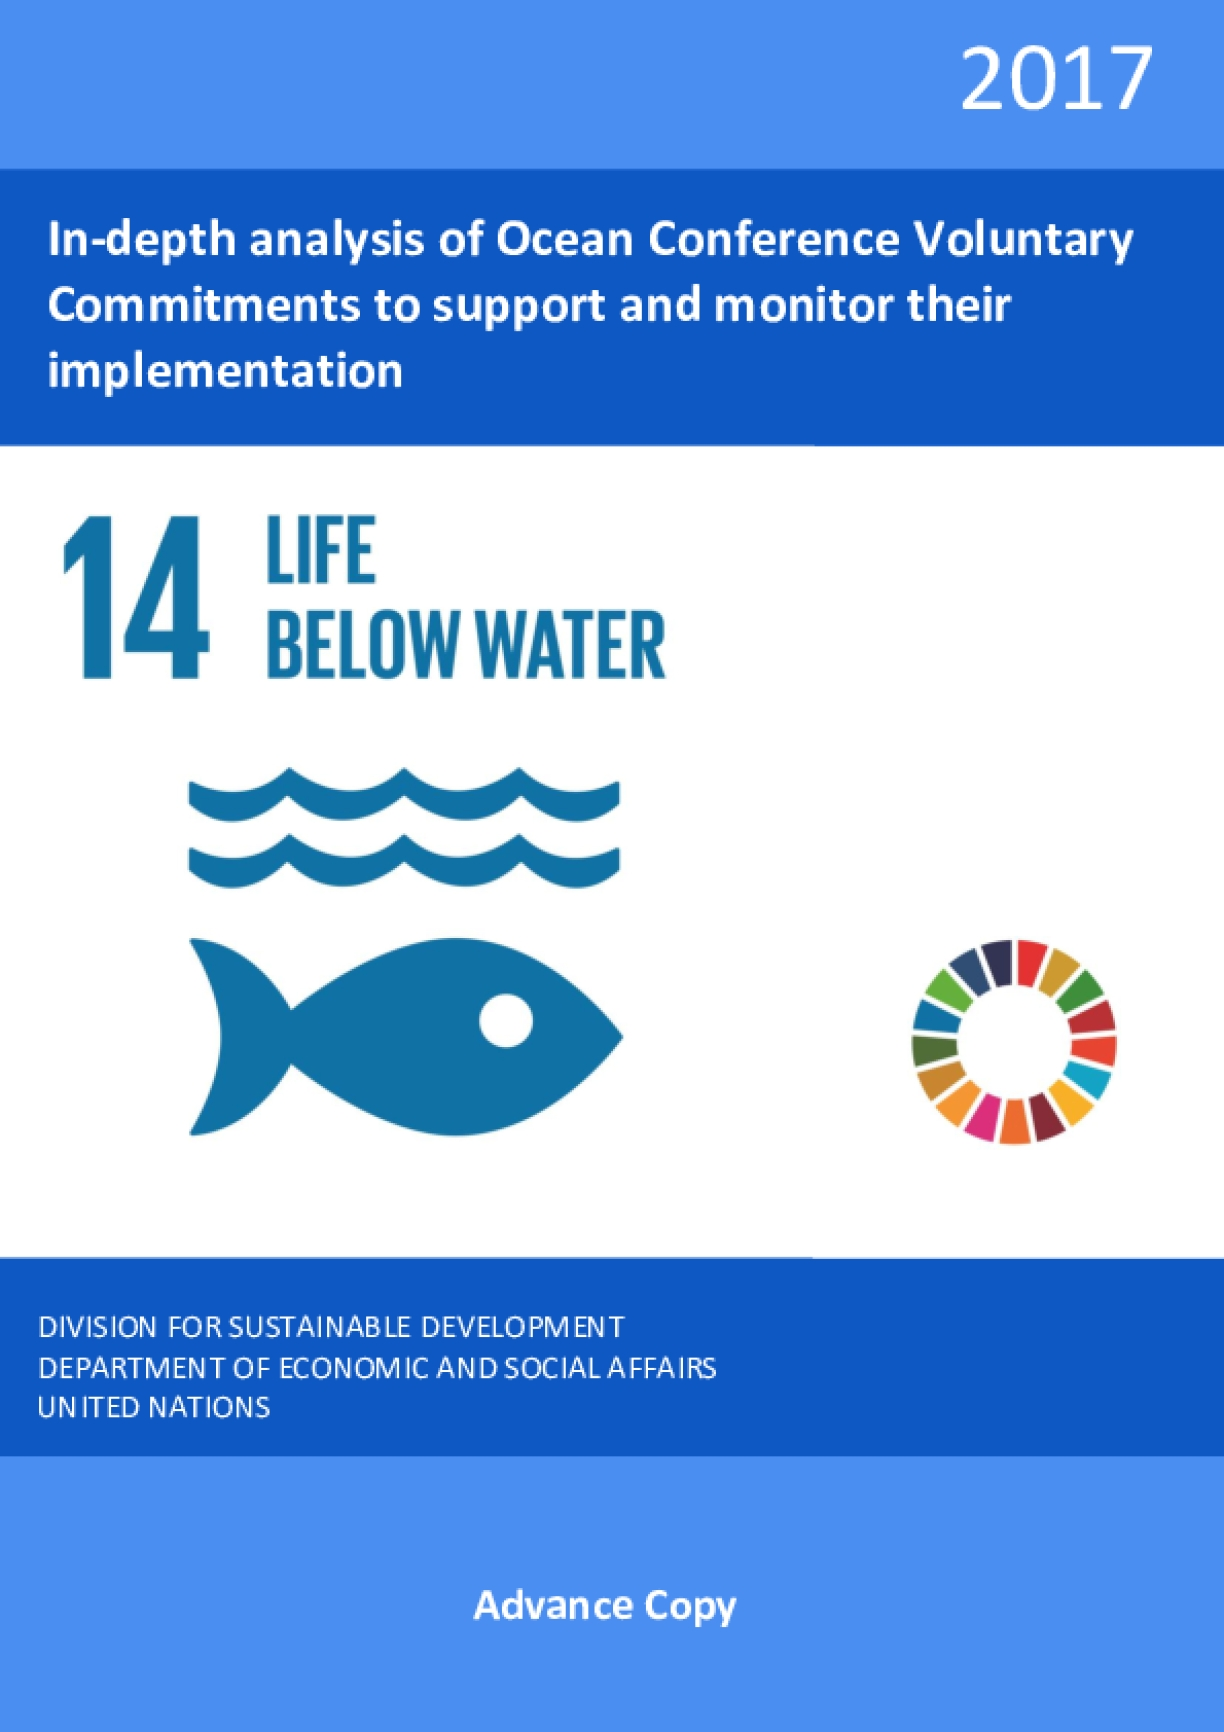 In-depth Analysis of Ocean Conference Voluntary Commitments to Support and Monitor their Implementation